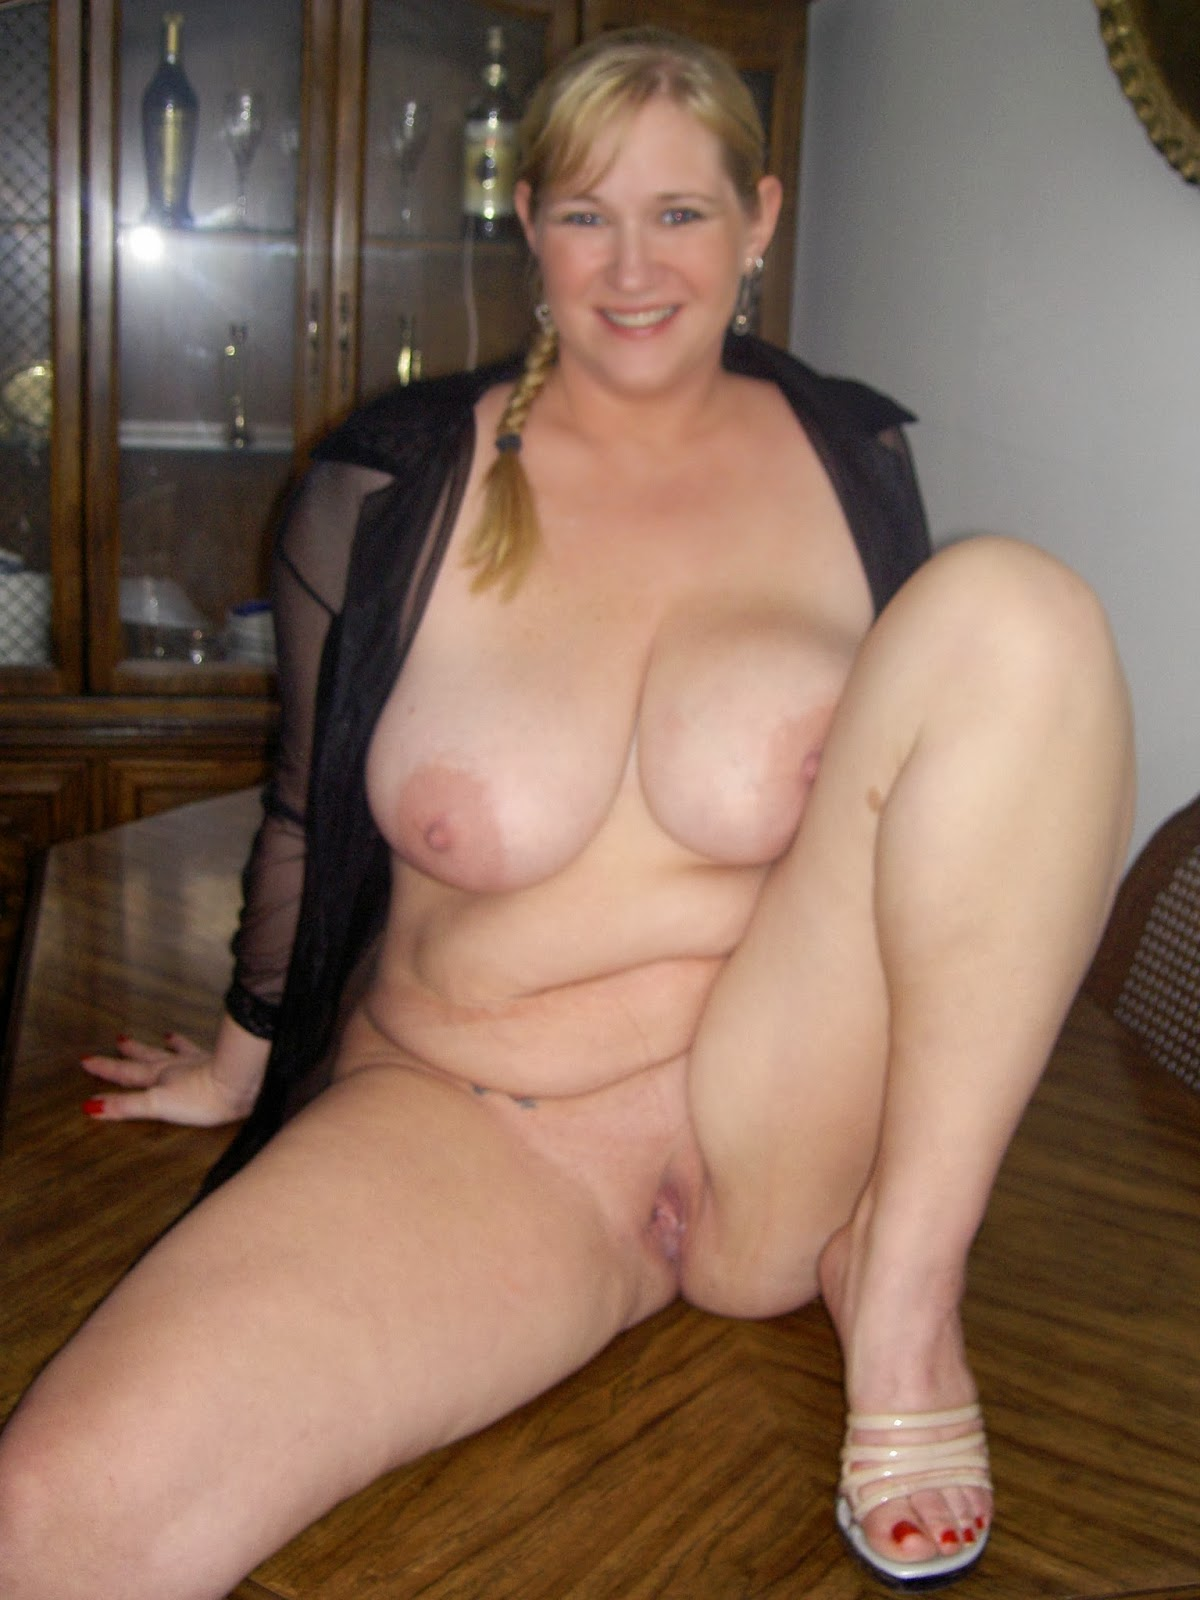 Chubby housewife nude pic man